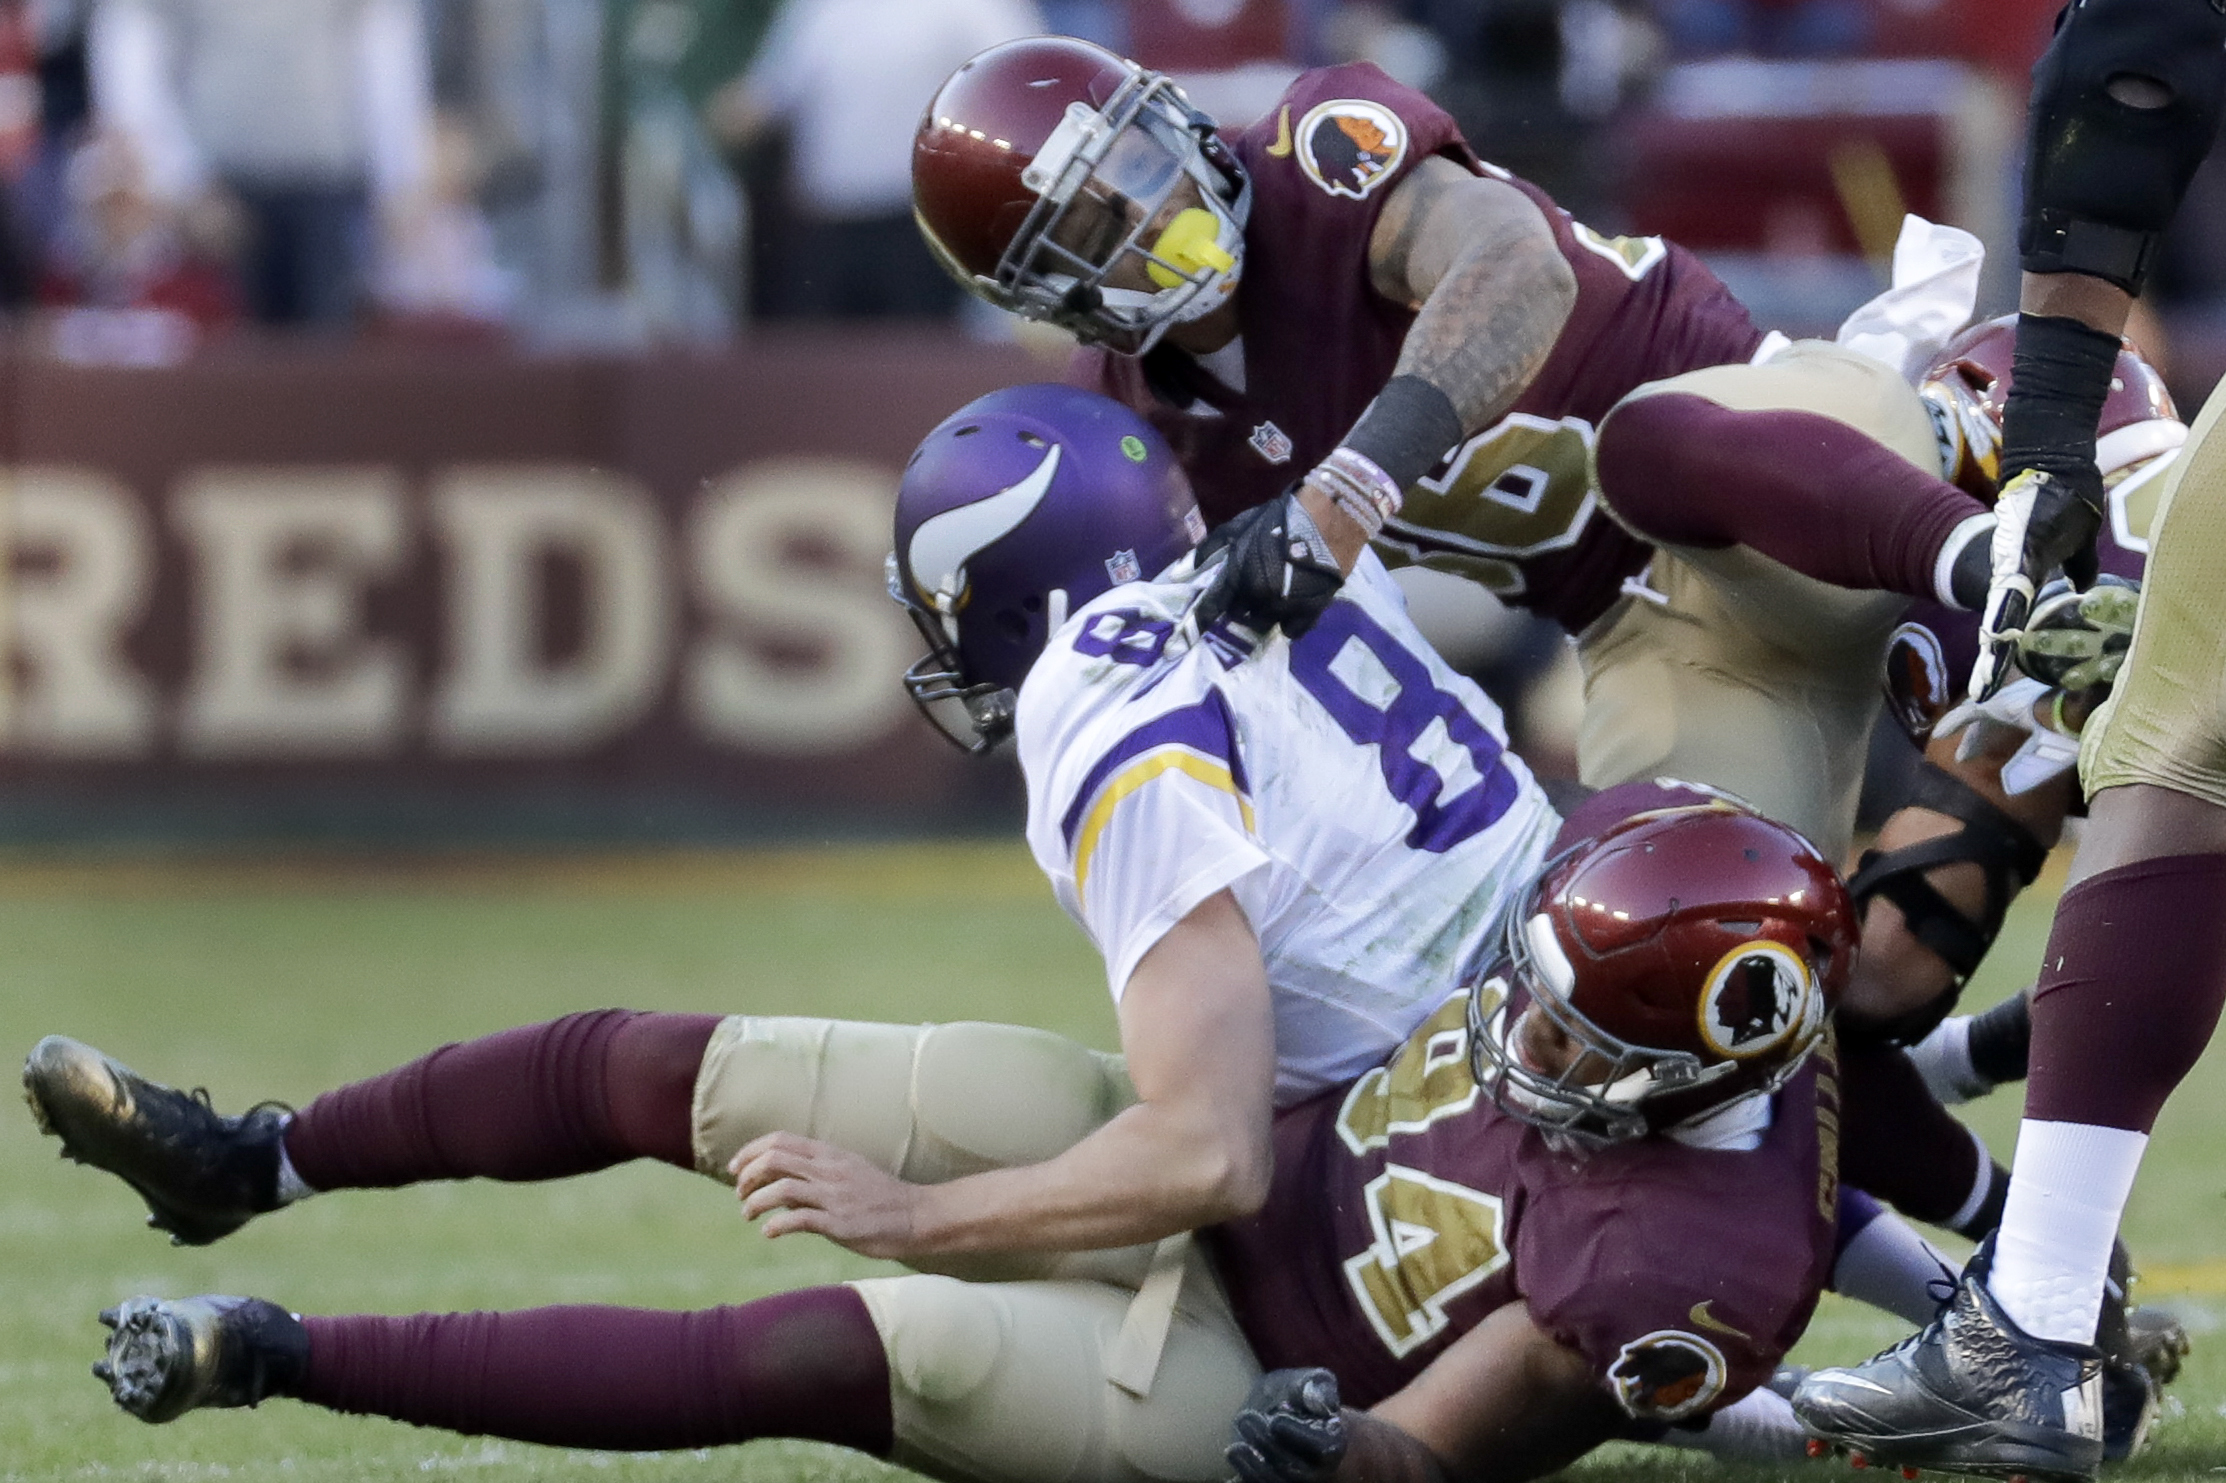 Minnesota Vikings quarterback Sam Bradford (8) is sacked by Washington Redskins linebacker Preston Smith (94) and safety Su'a Cravens (36) during the second half of an NFL football game in Landover, Md., Sunday, Nov. 13, 2016. Washington defeated Minnesot